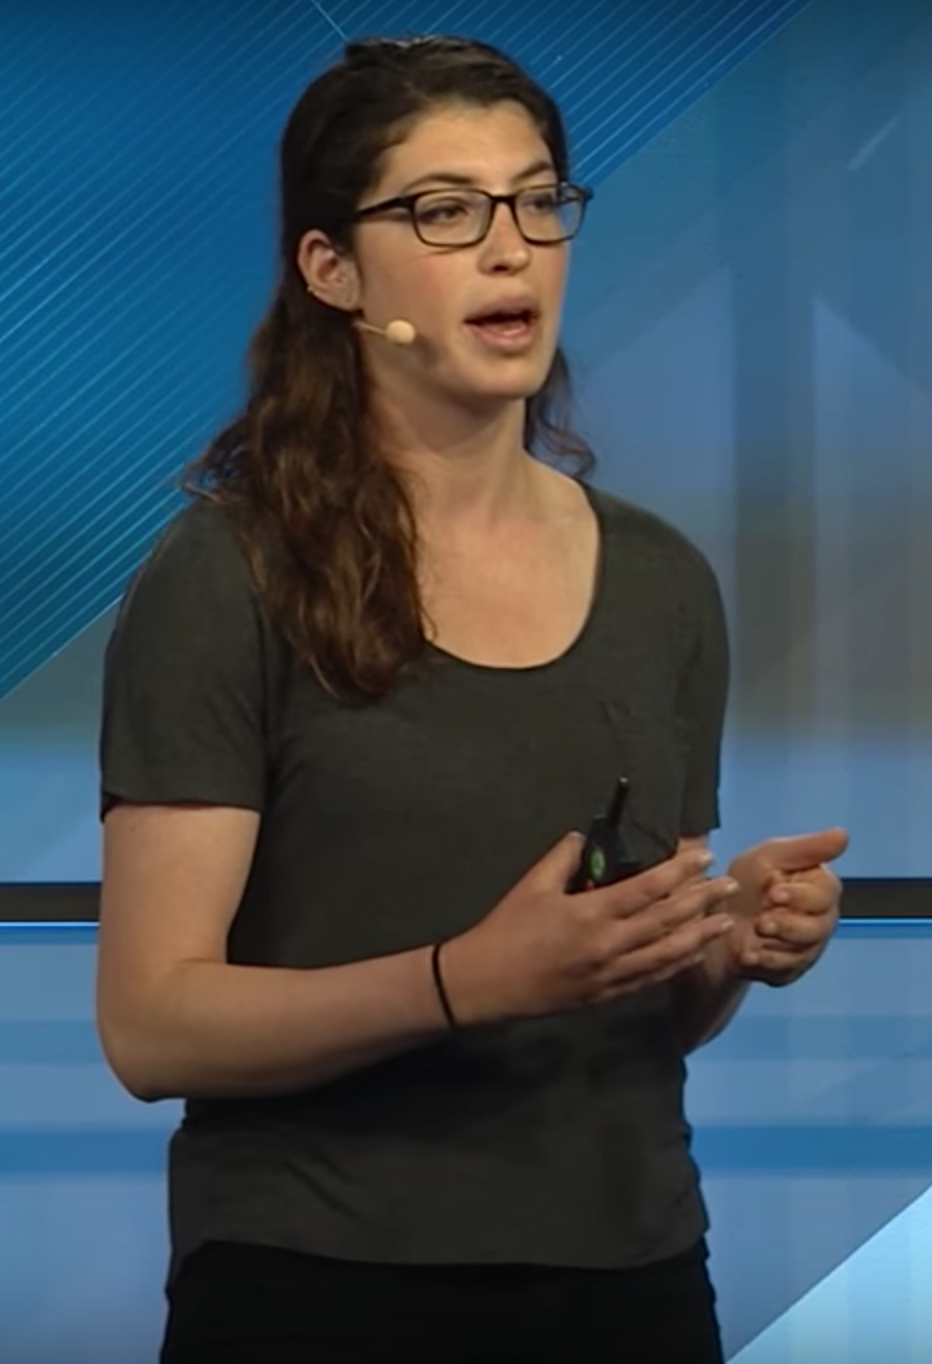 Emily Schechter, Product Manager